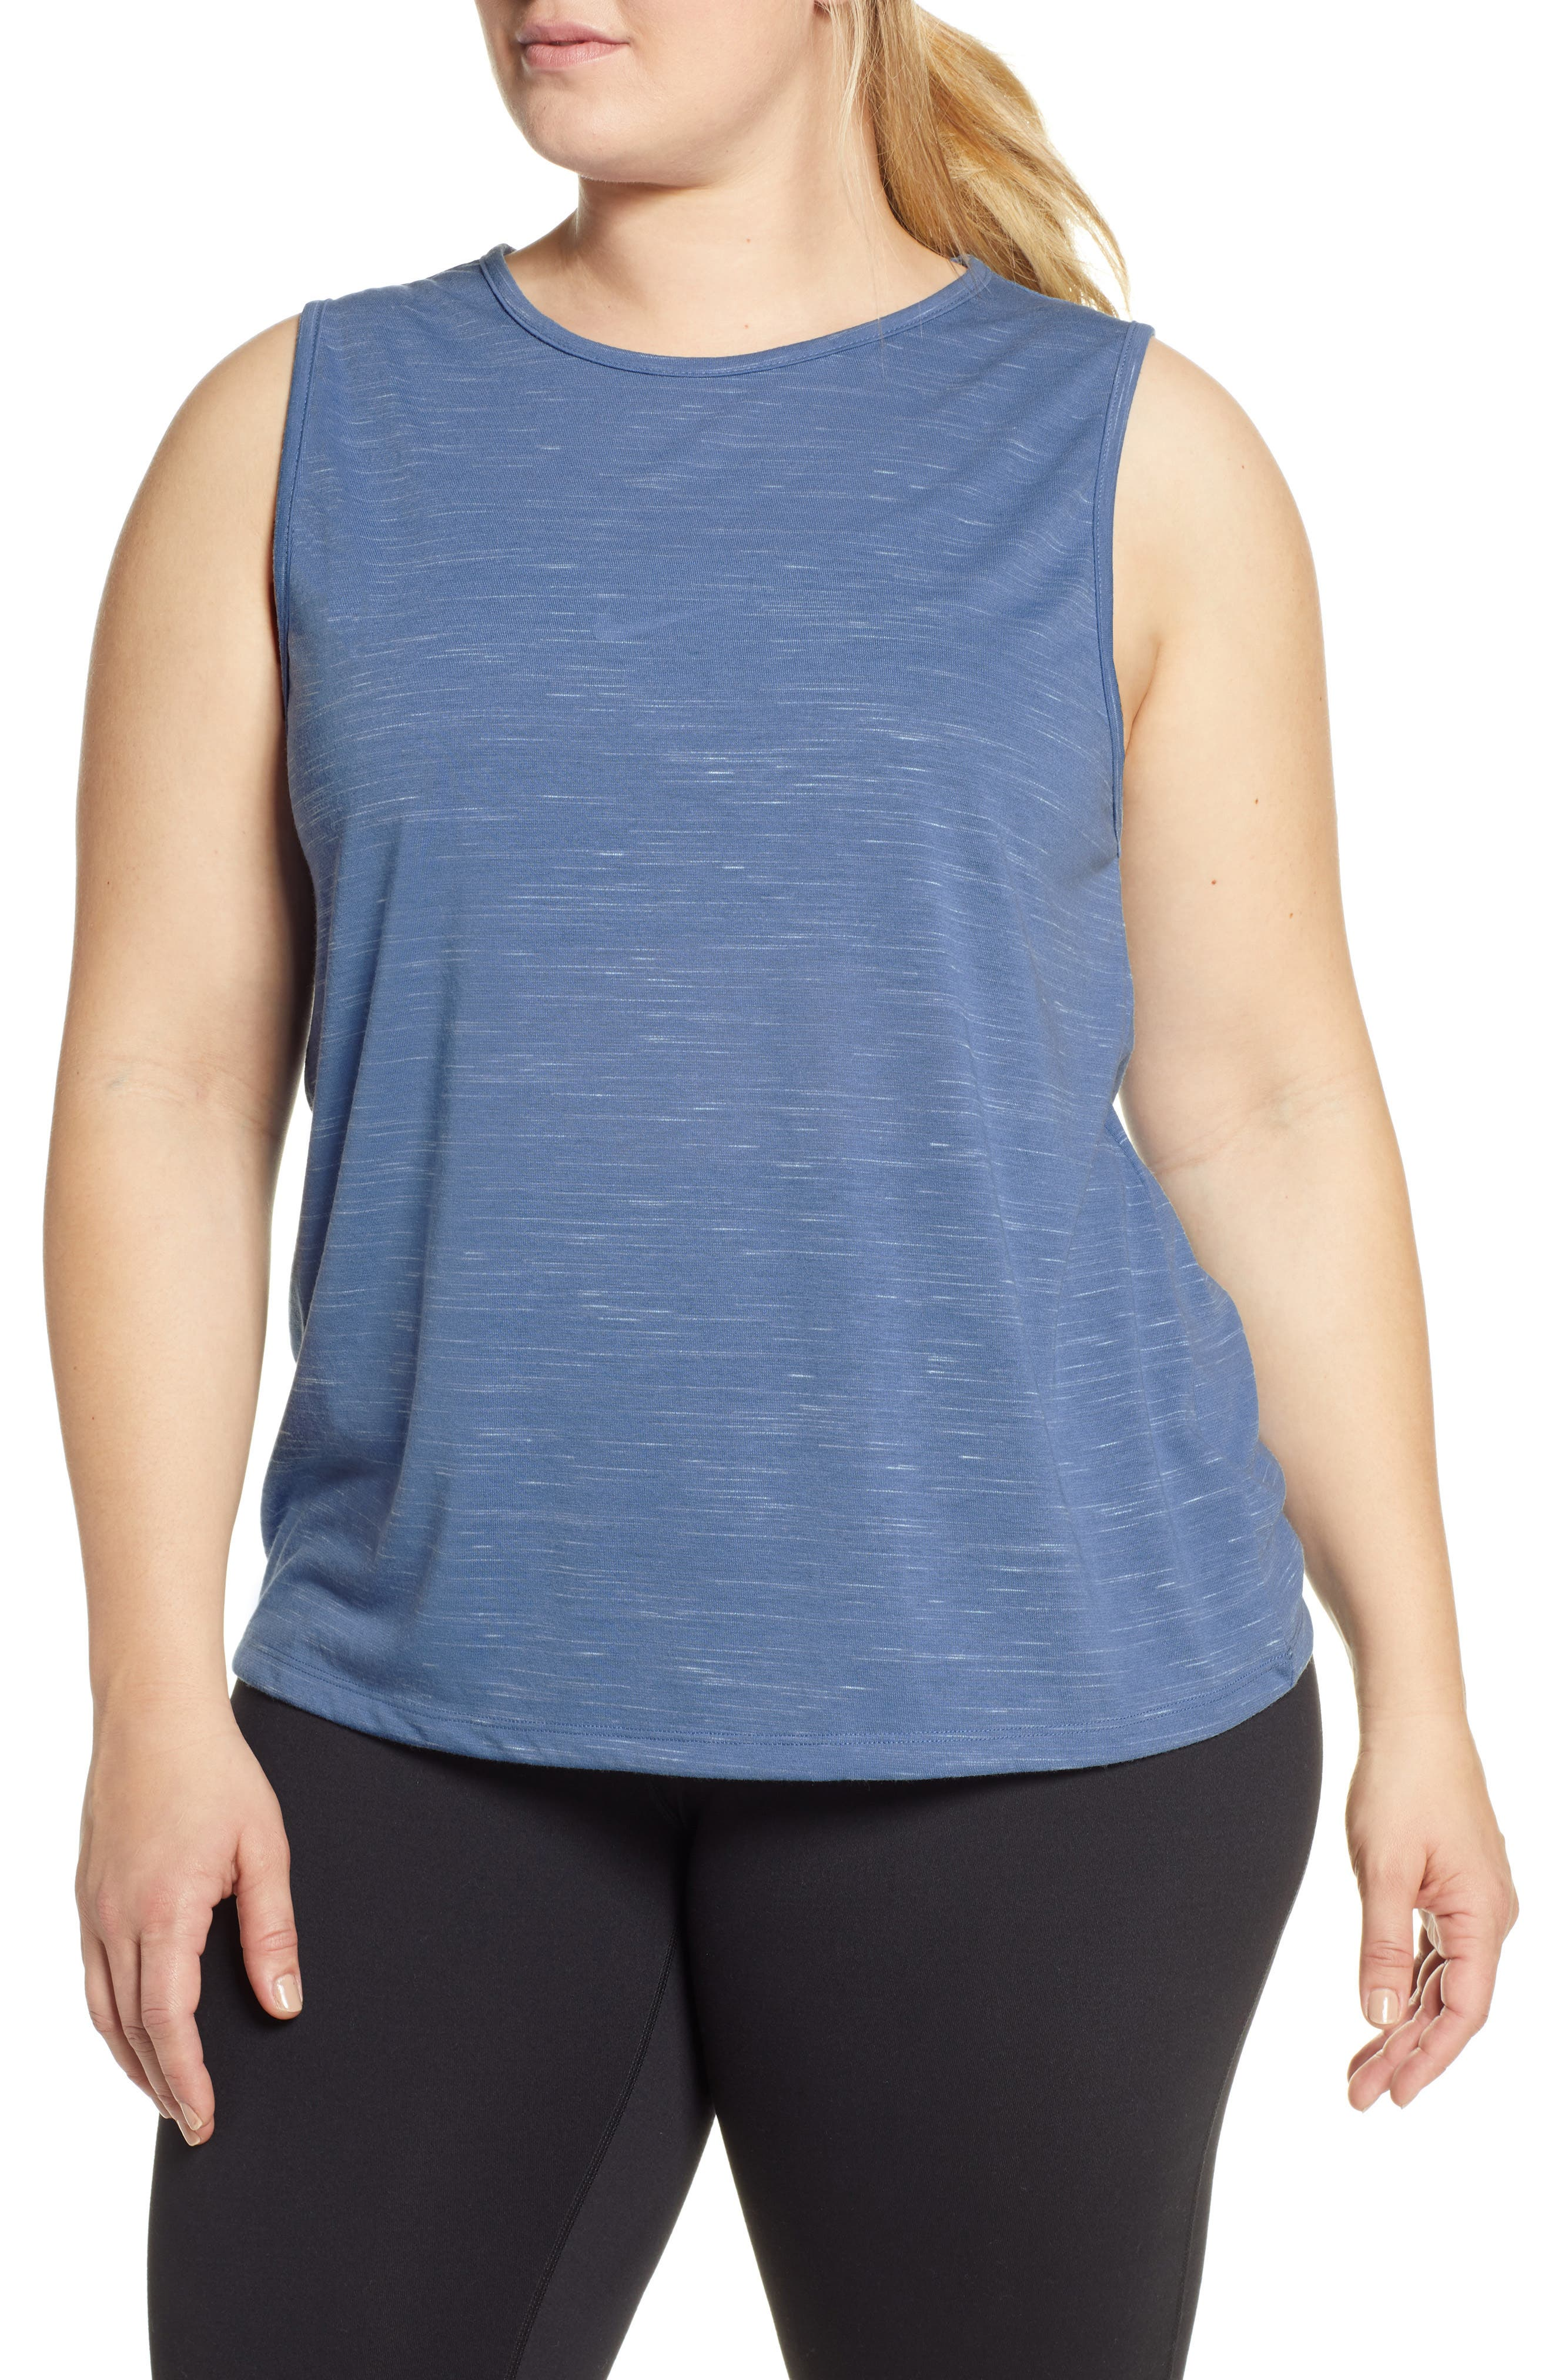 a082aa06 Nike Plus Size Tops | Nordstrom